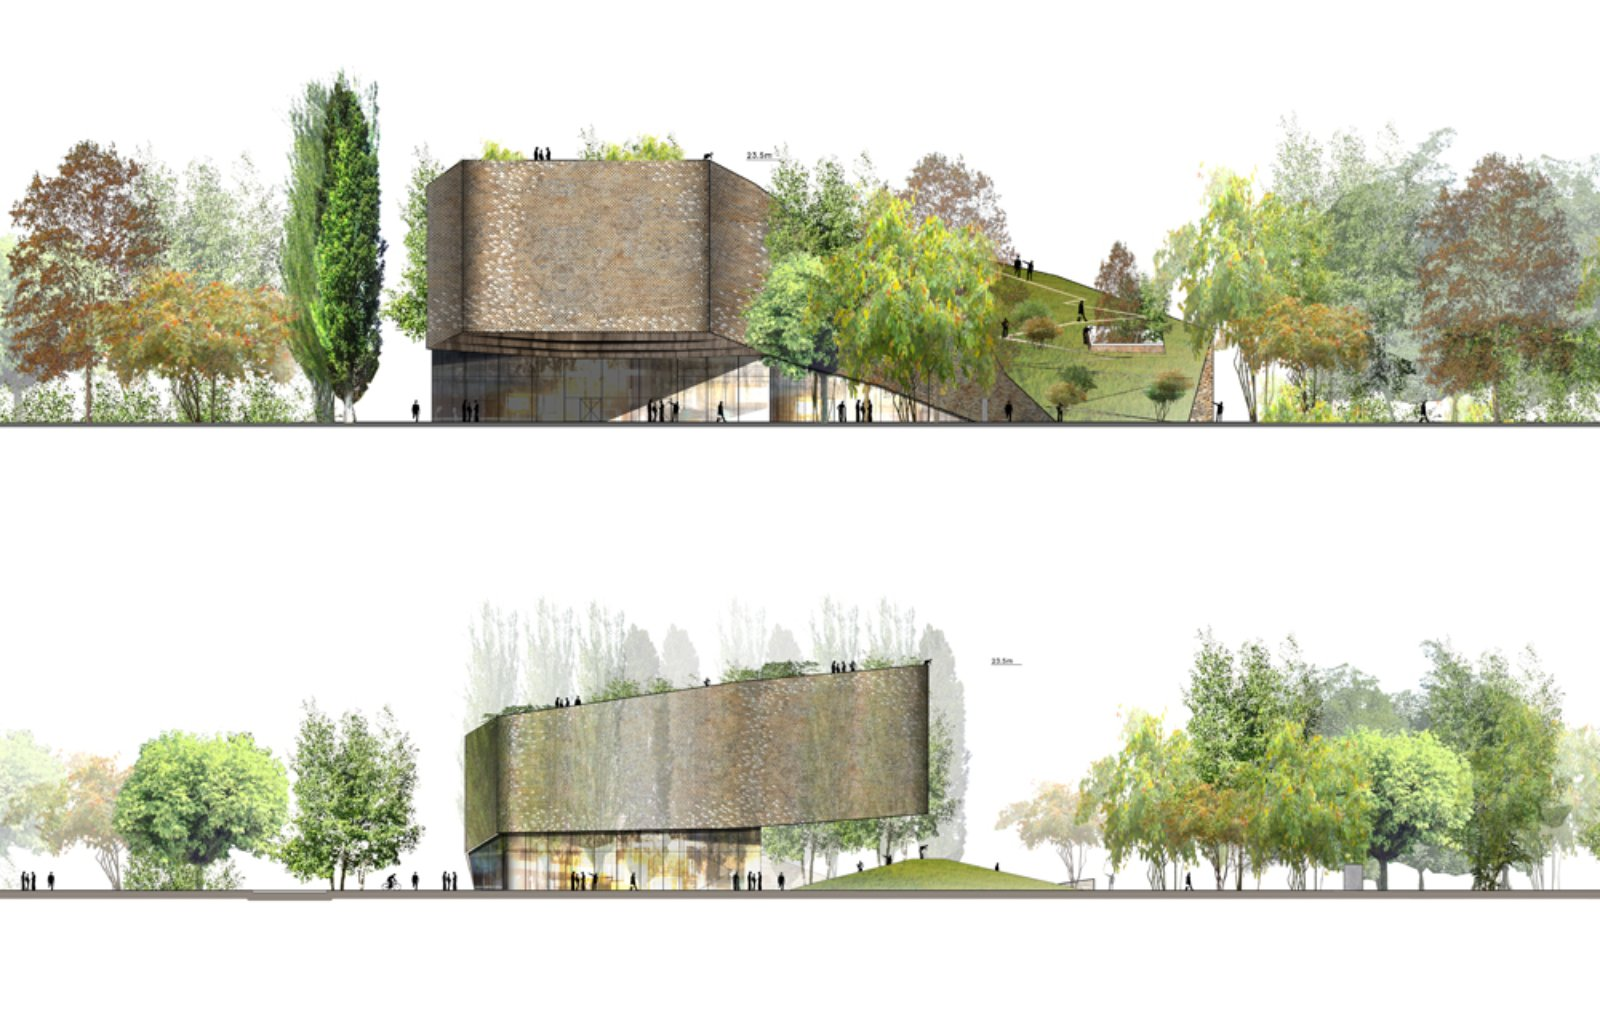 The house of hungarian music by wild architecture 08 for House music structure